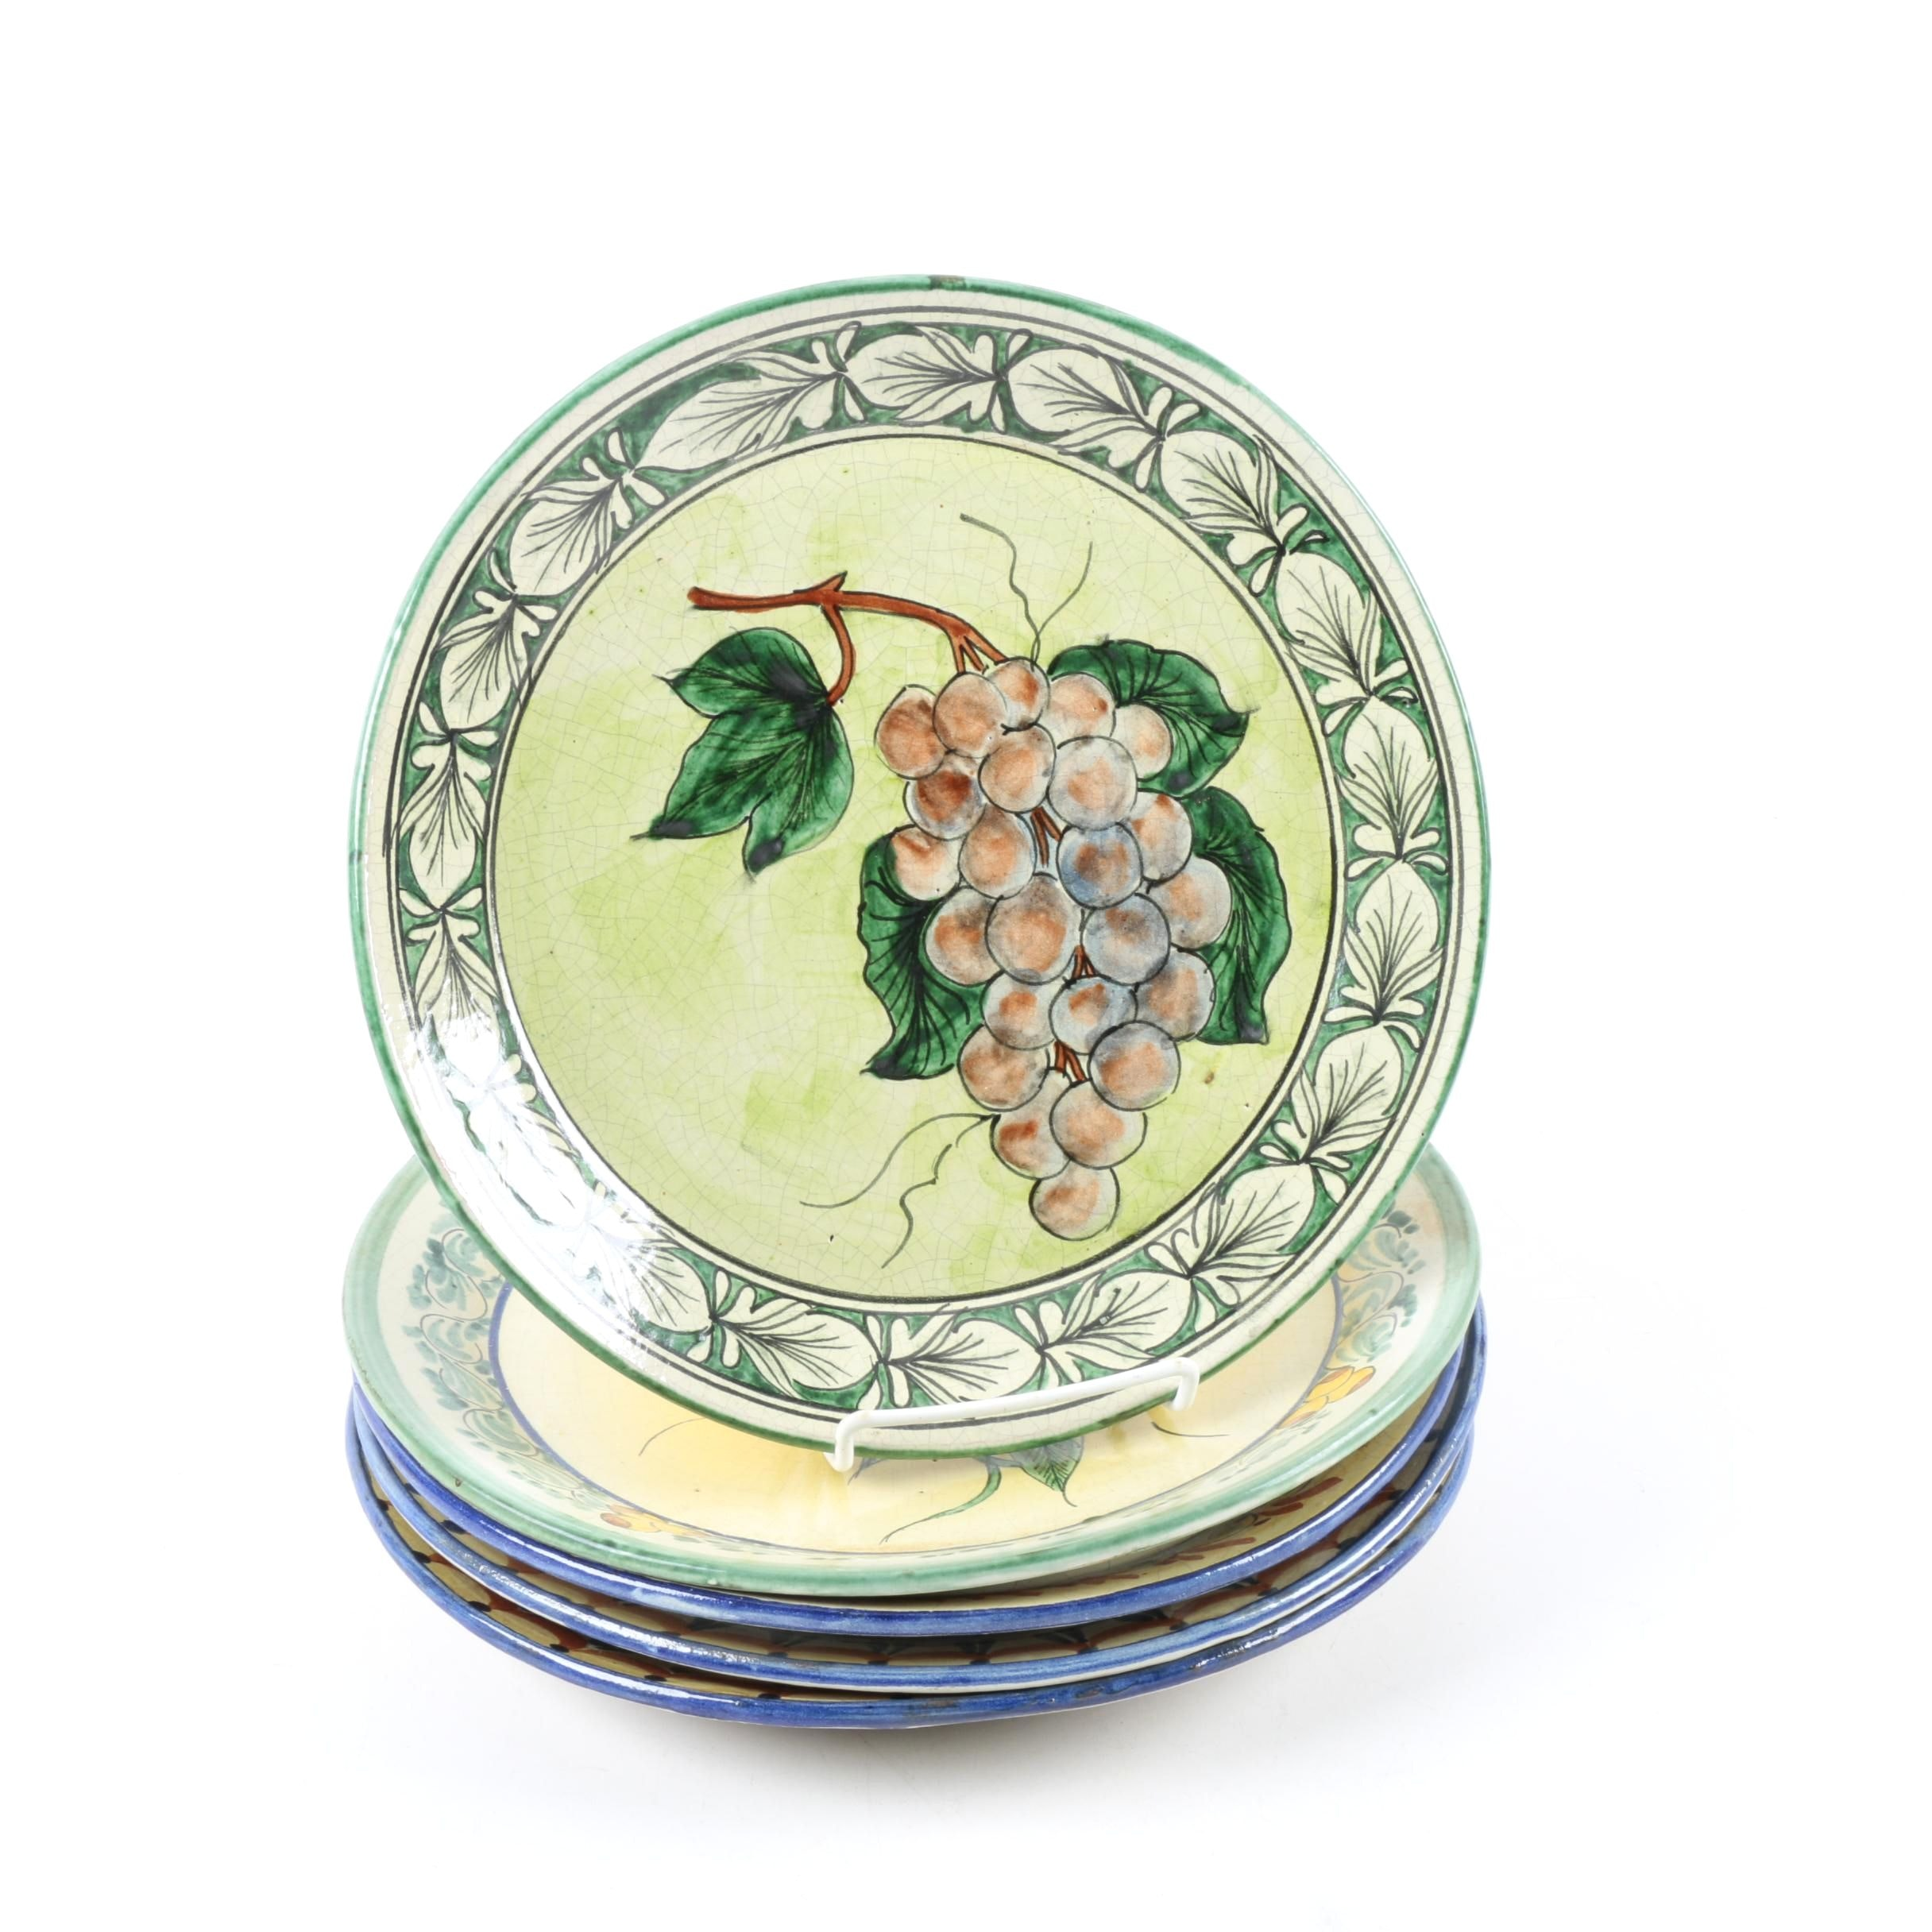 Fruit and Vegetable Themed Ceramic Plates